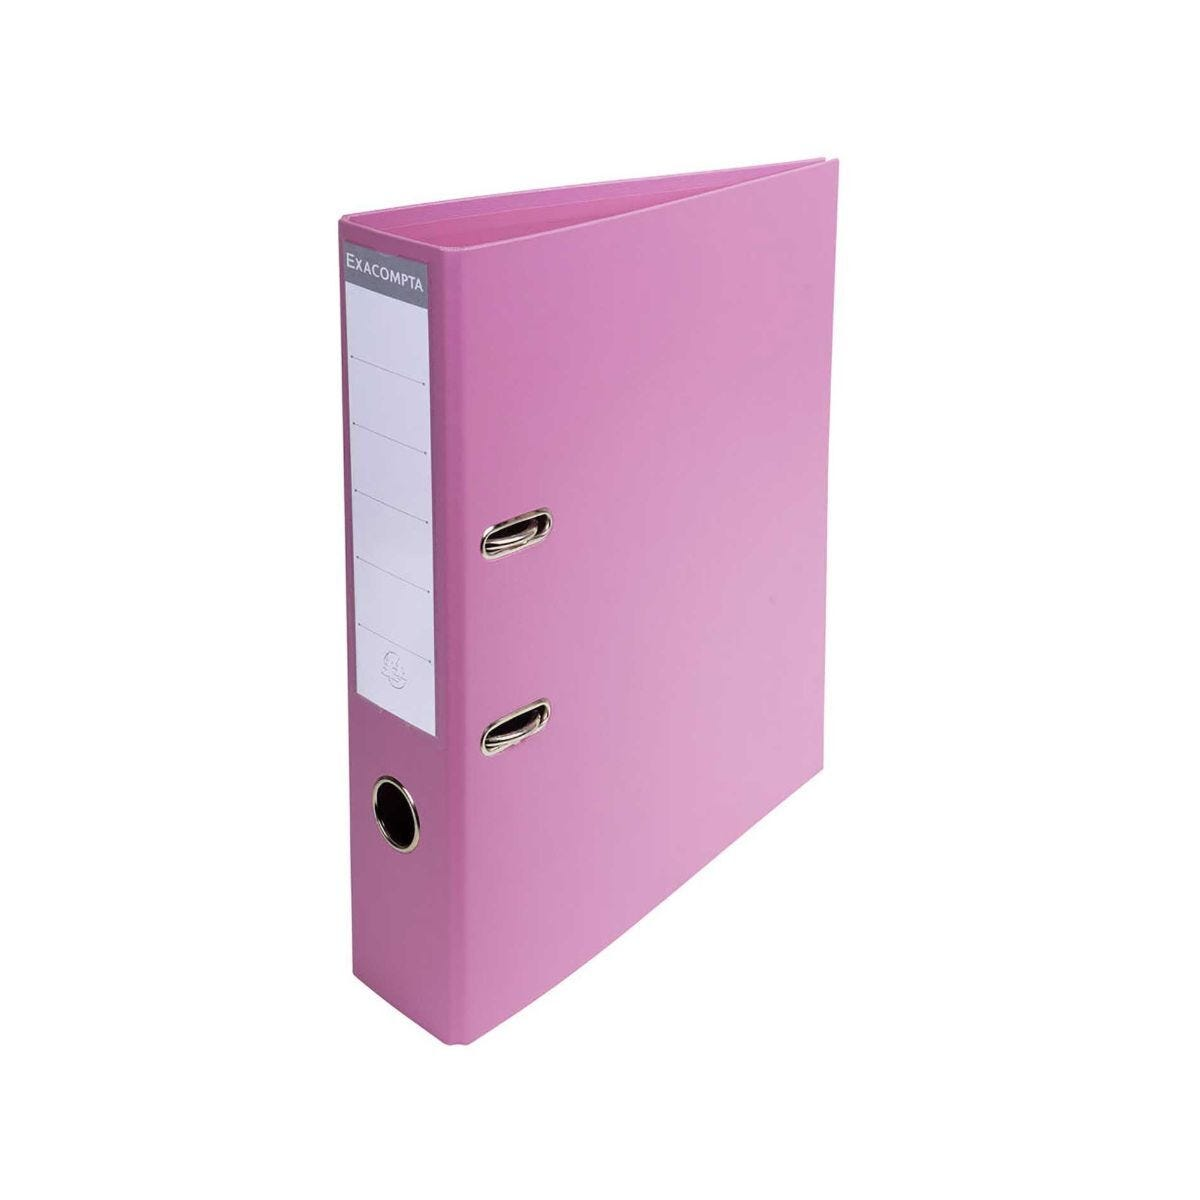 Exacompta Pastel Lever Arch File Pink